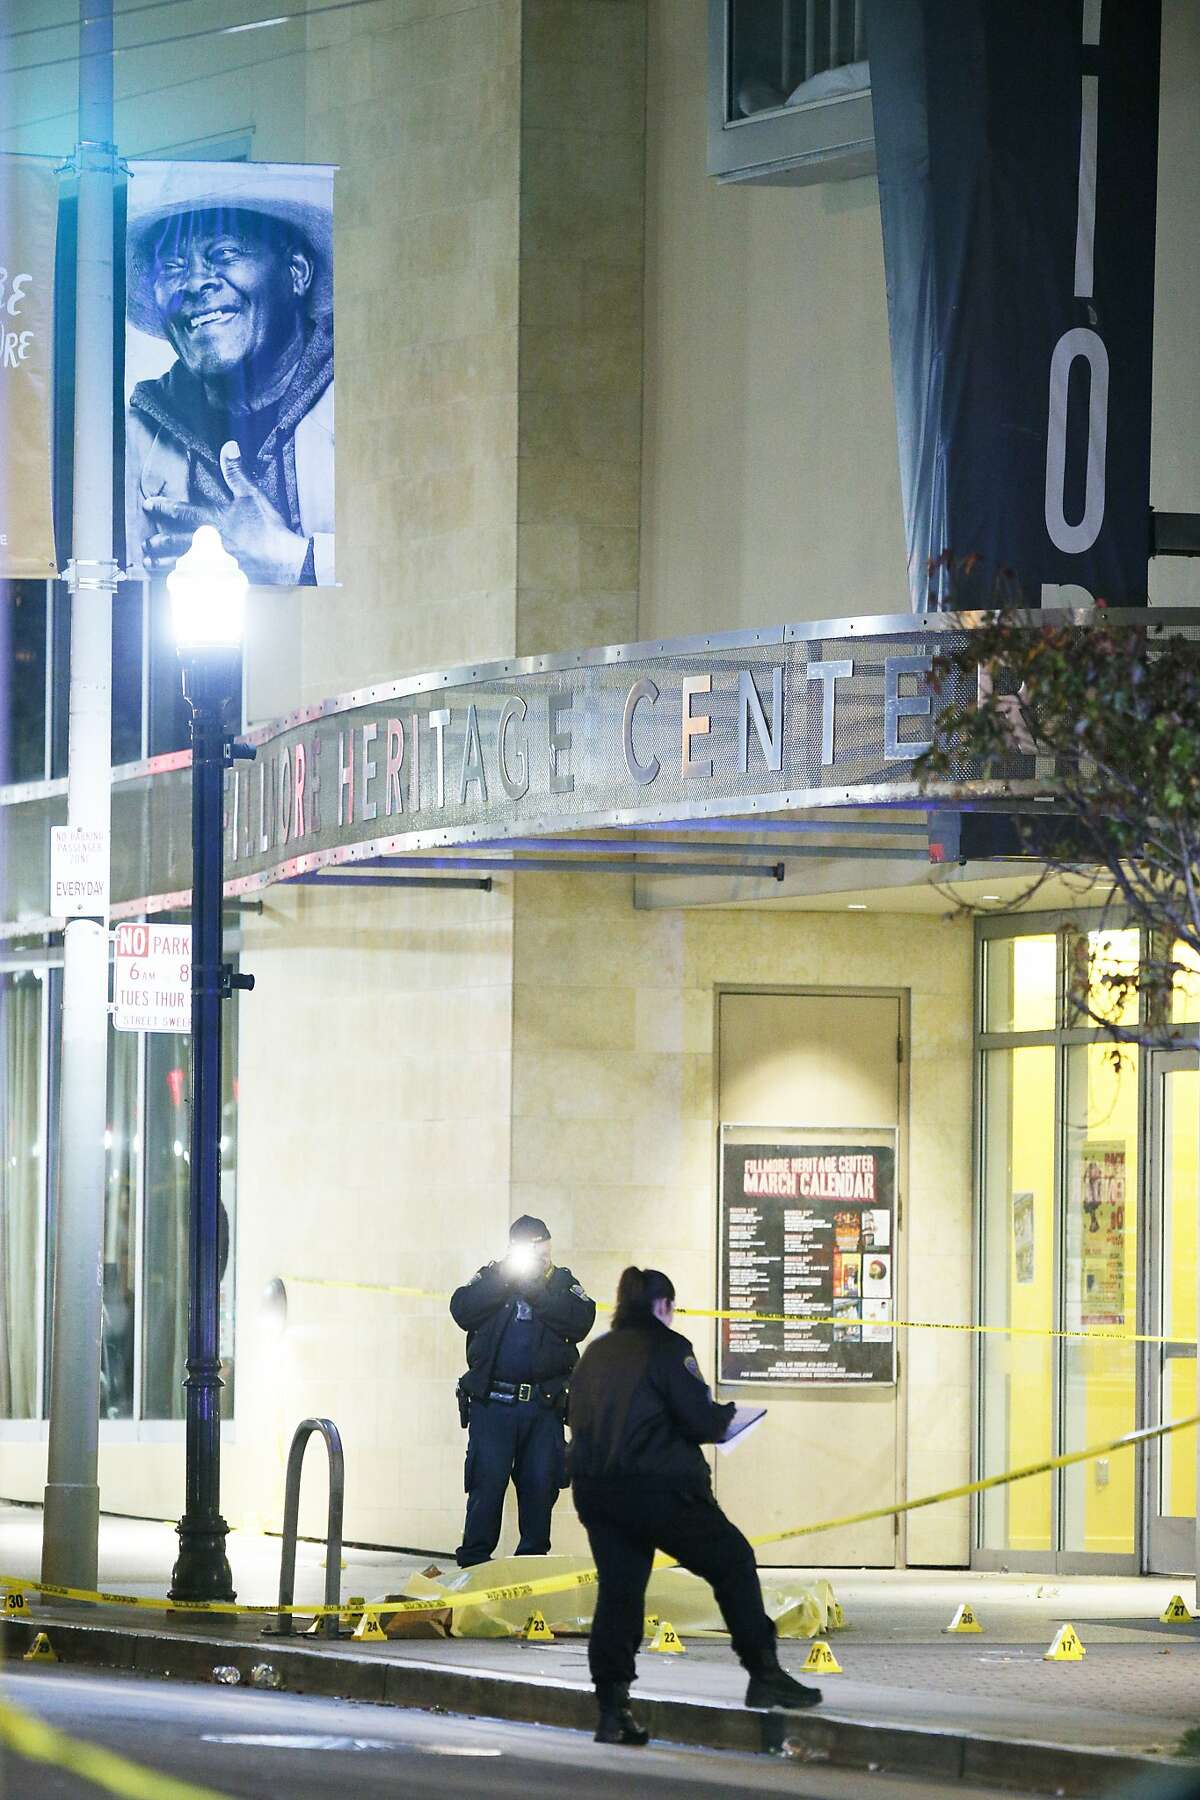 A body bag at the scene of a shooting outside the Fillmore Heritage Center as police investigate the area on Saturday, March 23, 2019, in San Francisco, Calif. Police said one is dead and several injured after a shooting.